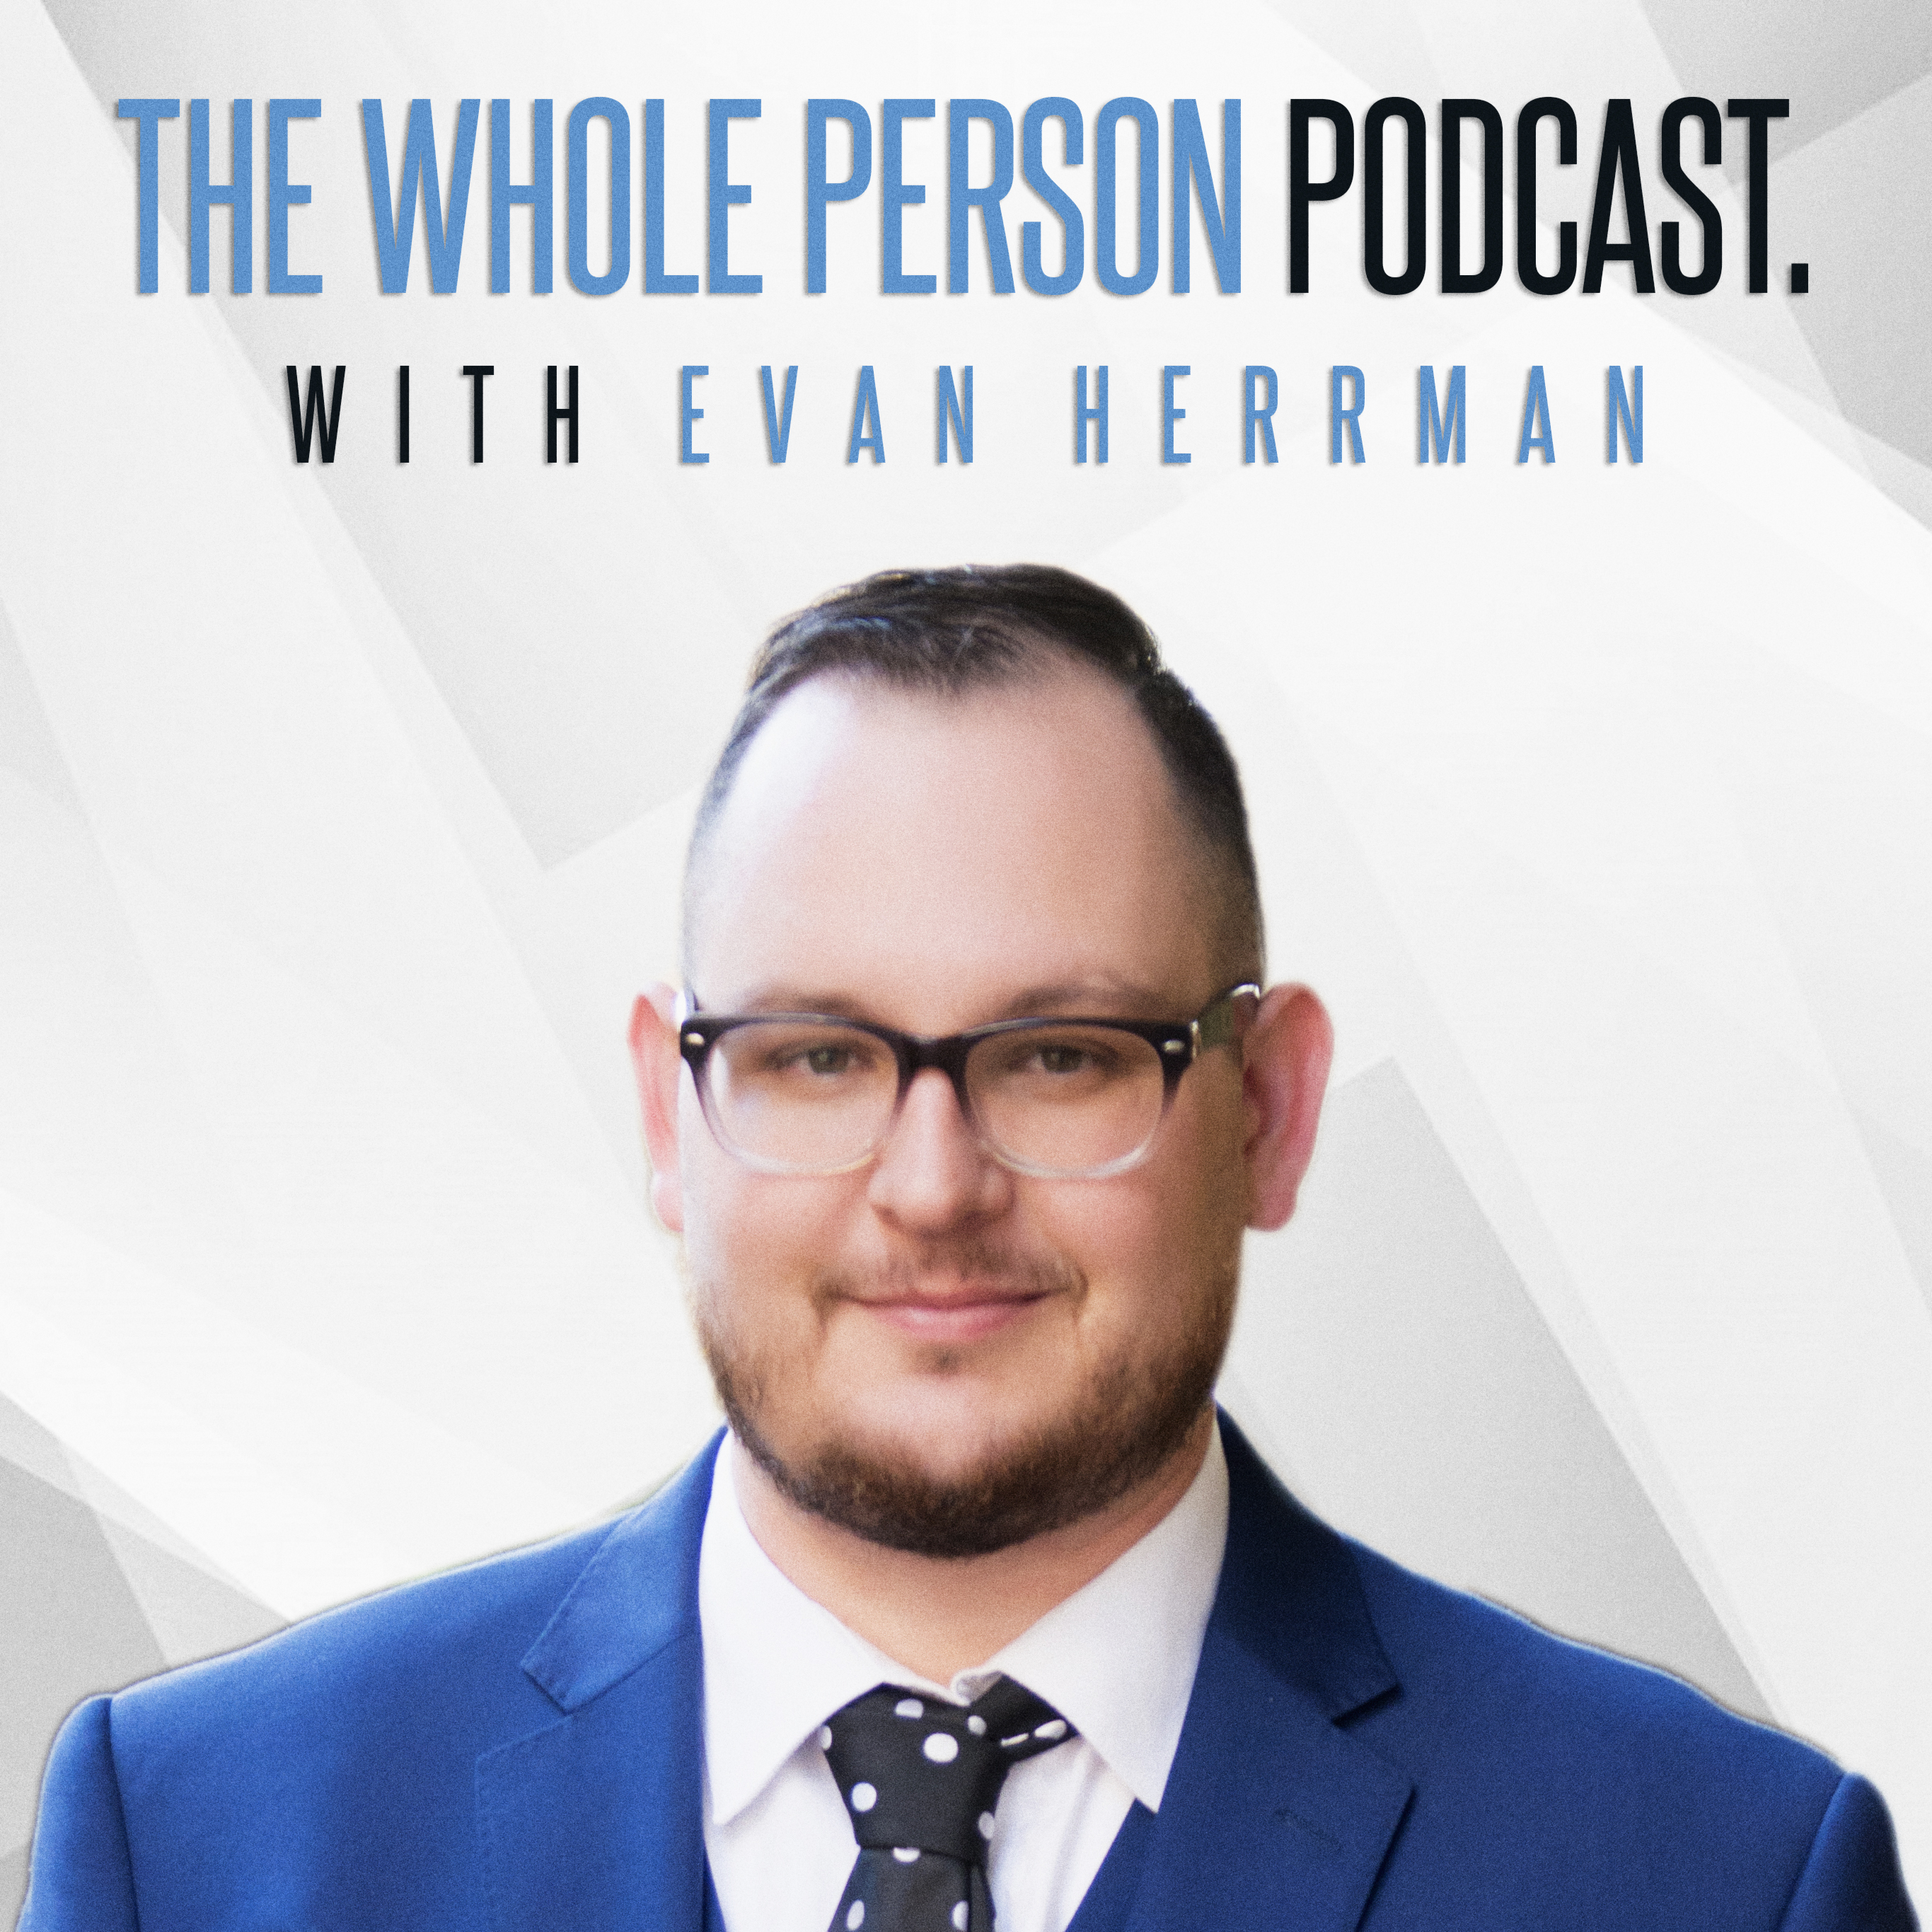 Artwork for Marriage, Love and Respect guest Dr. Emerson Eggerichs with host Evan Herrman